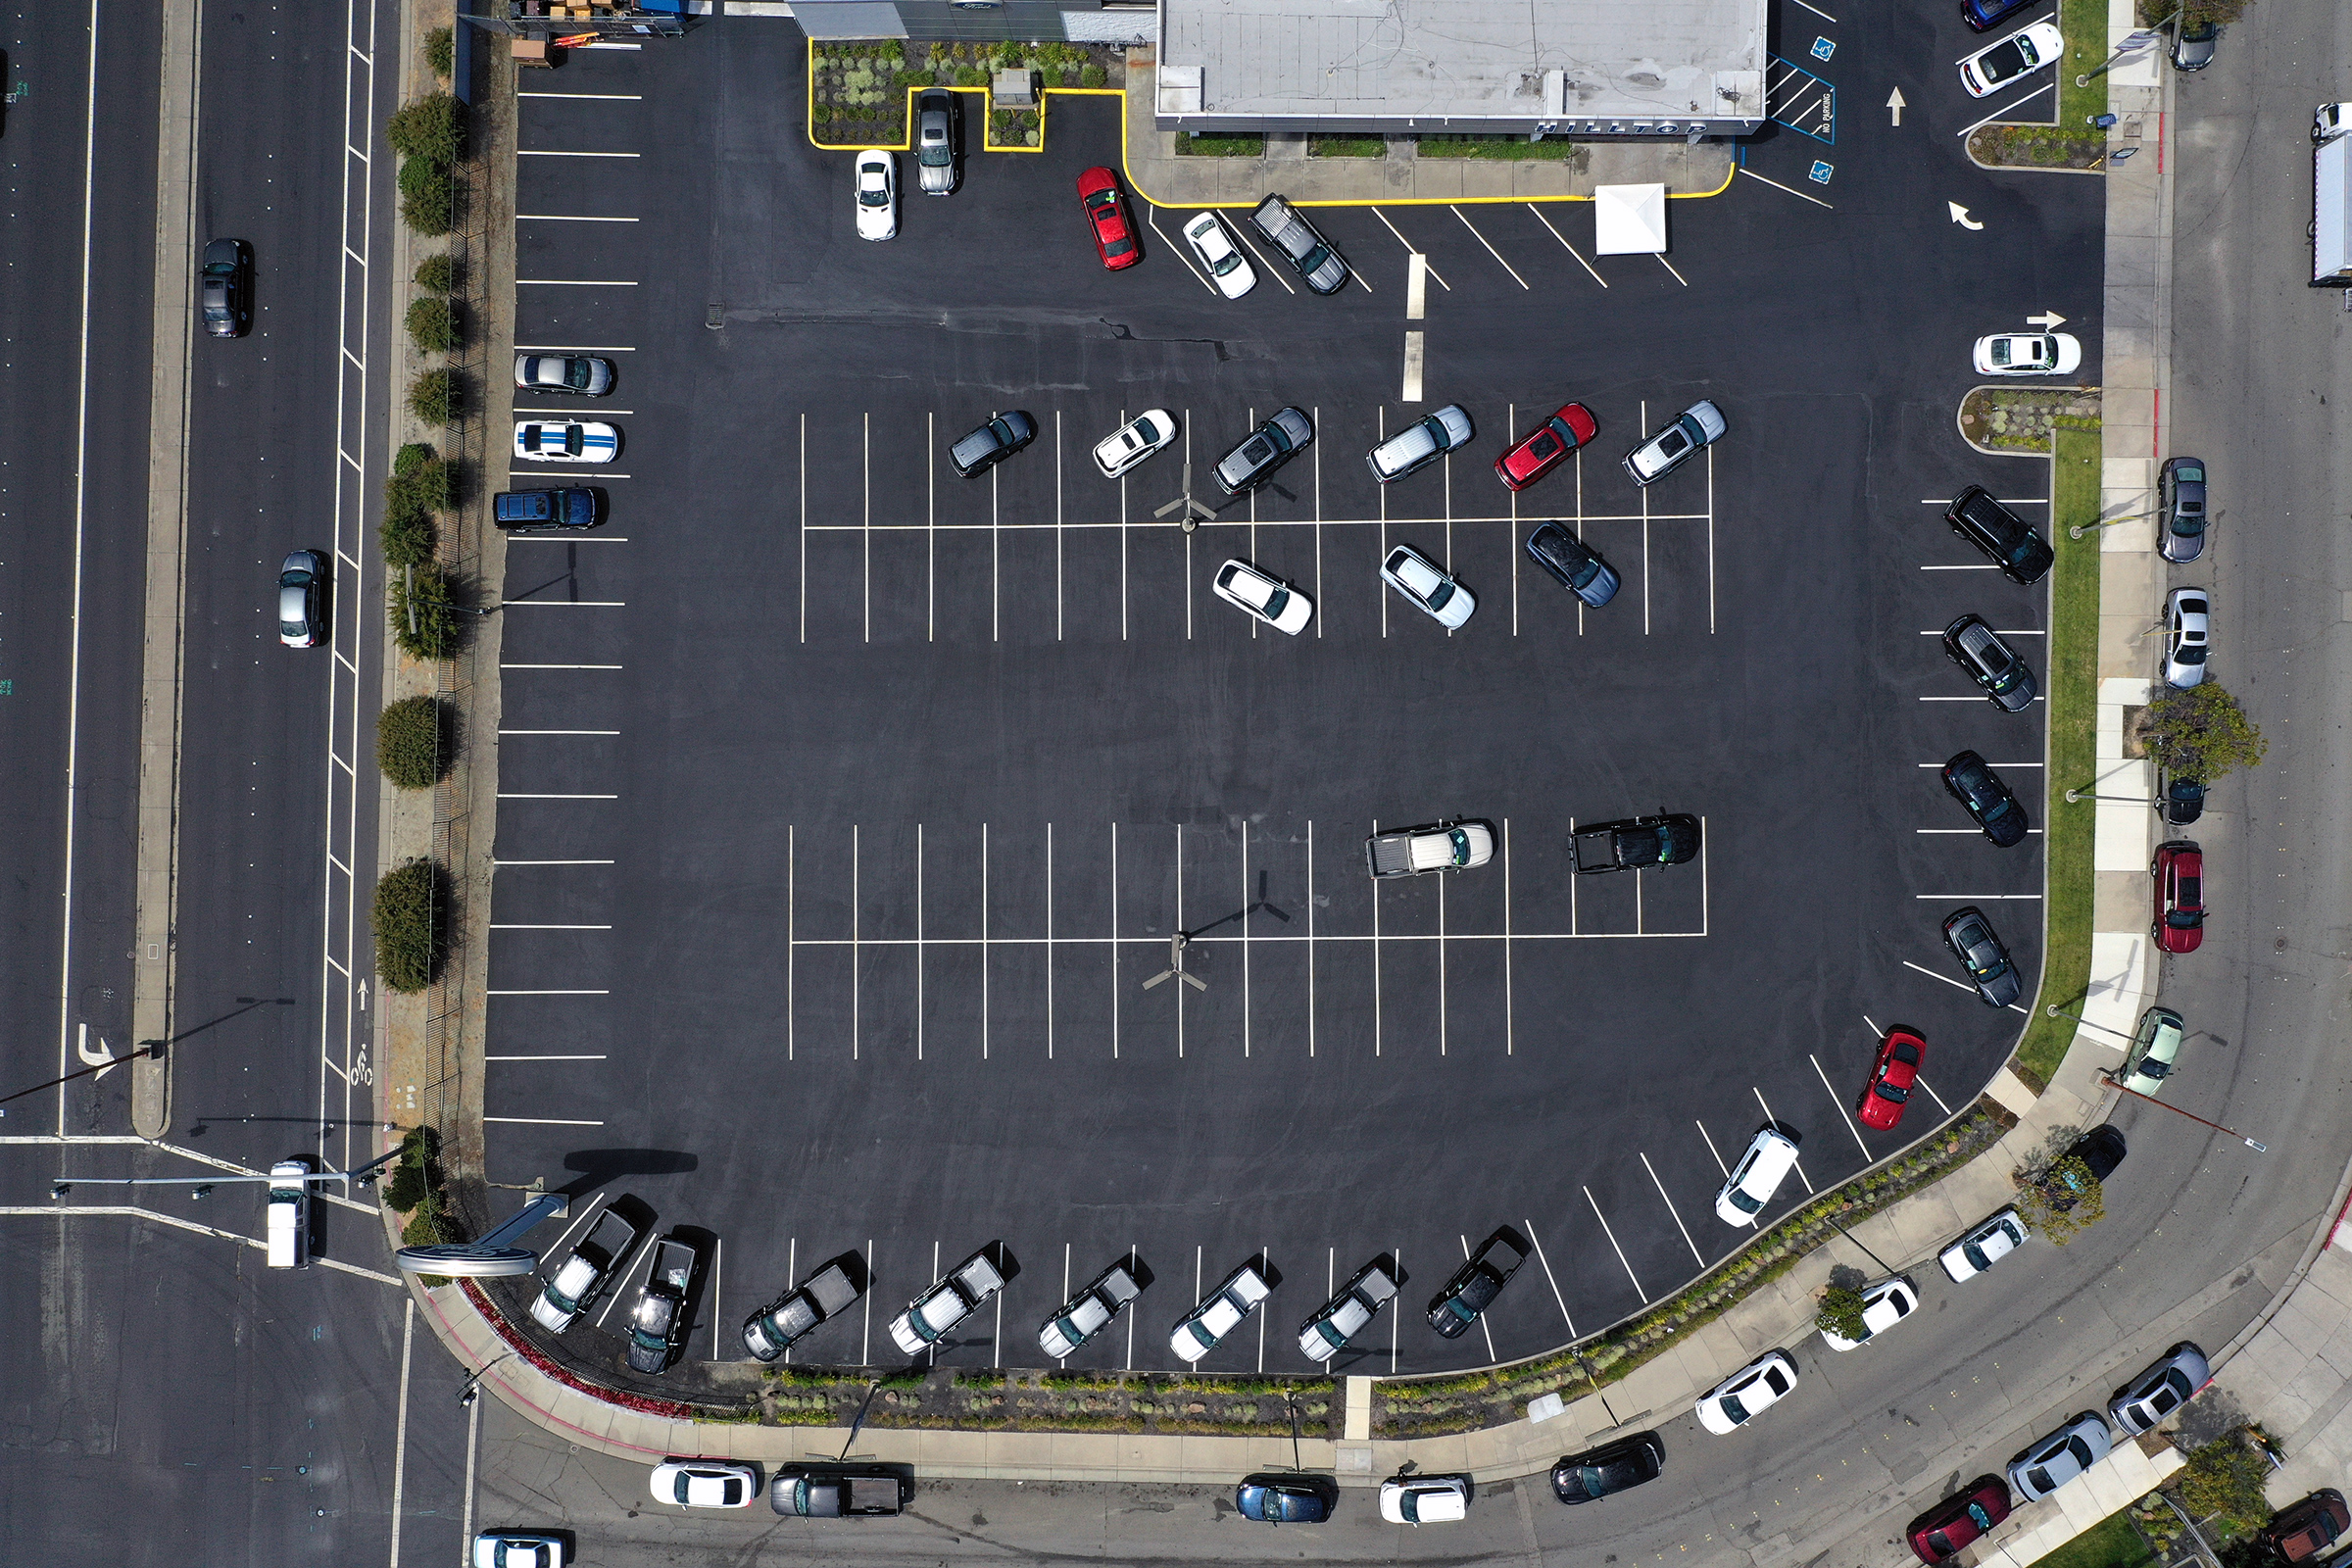 In an aerial view, the sales lot at Hilltop Ford is nearly empty on July 09, 2021 in Richmond, California. The global microchip shortage continues to impact the automobile supply chain and is causing the price of new cars to increase as inventory dwindles.